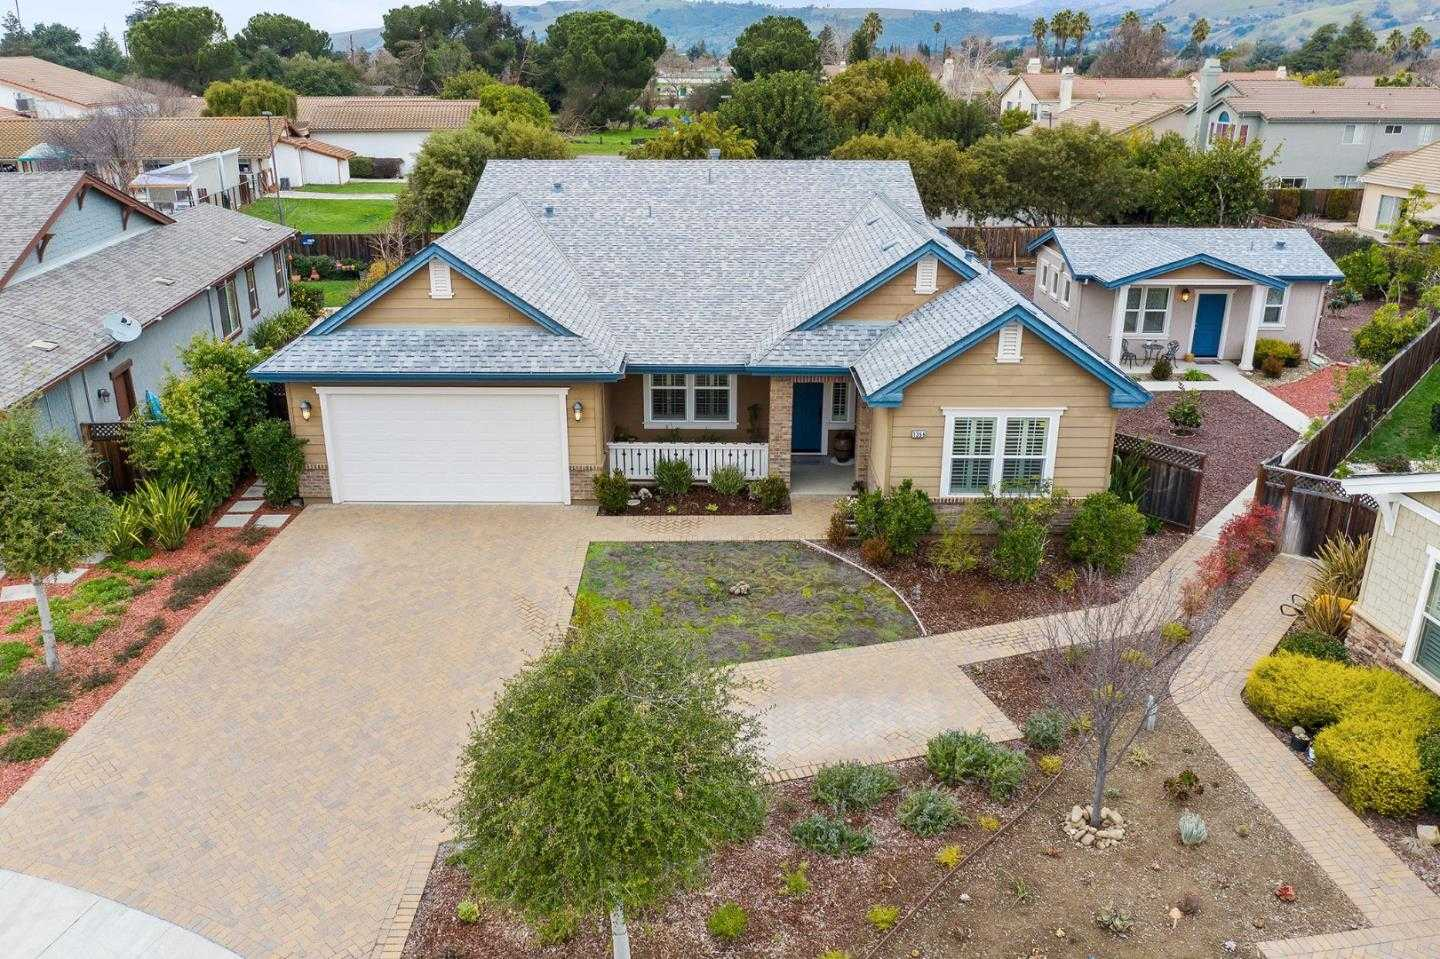 $1,550,000 - 4Br/3Ba -  for Sale in Morgan Hill